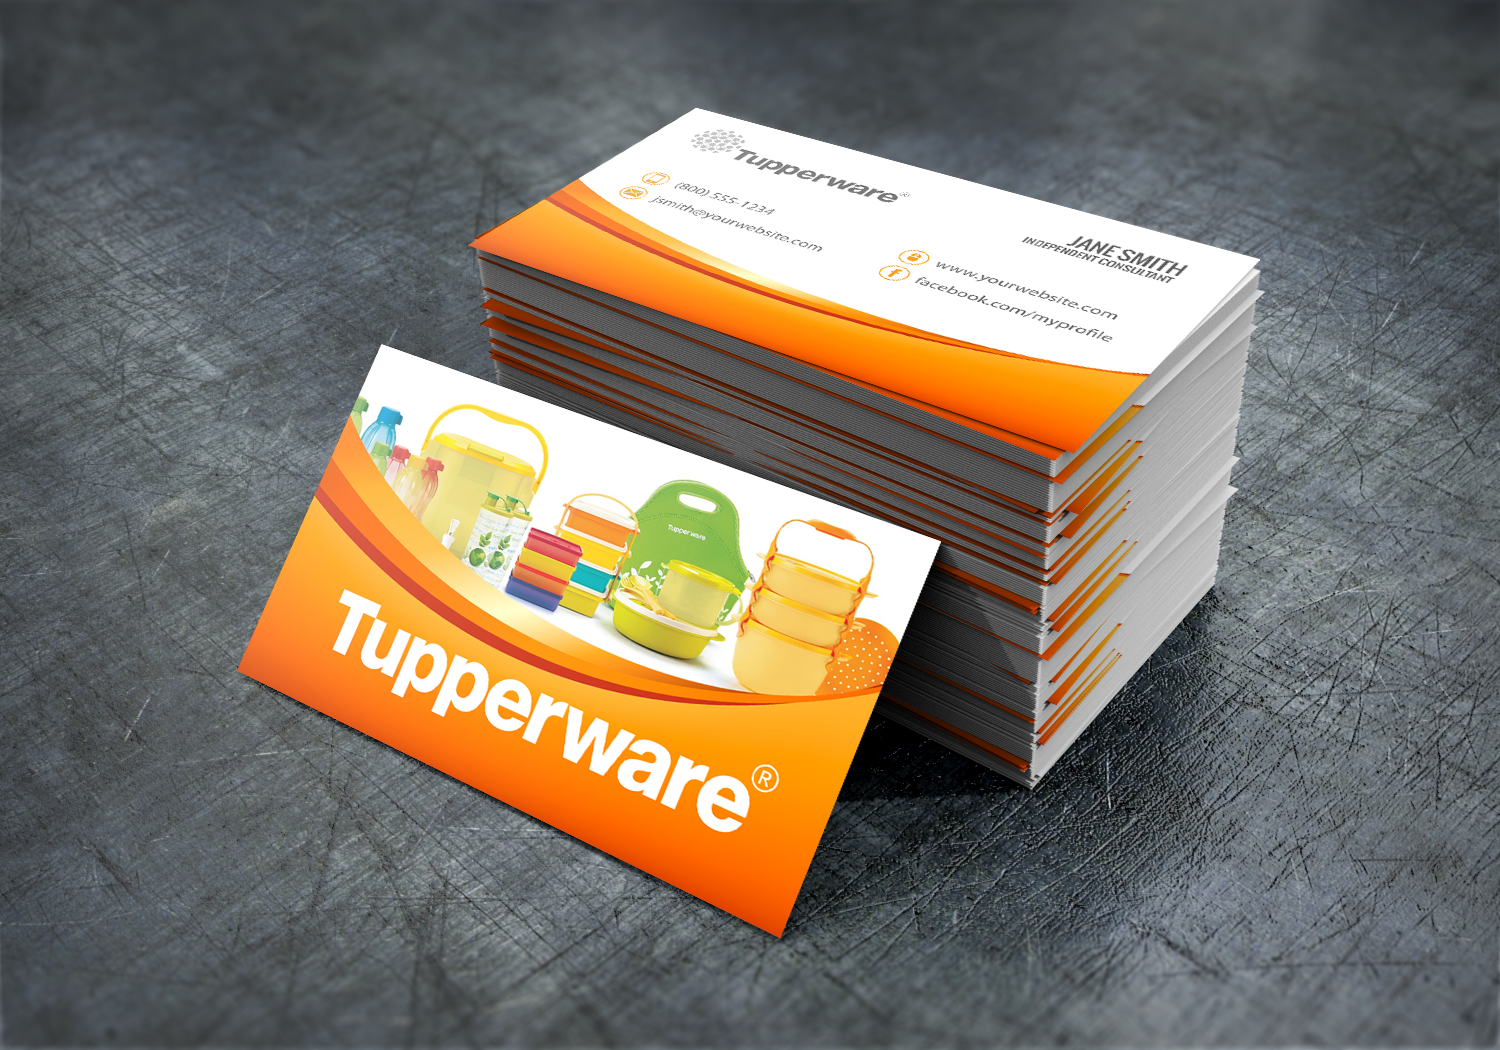 free business cards business card templates card printing tupperware business card design - Tupperware Business Cards